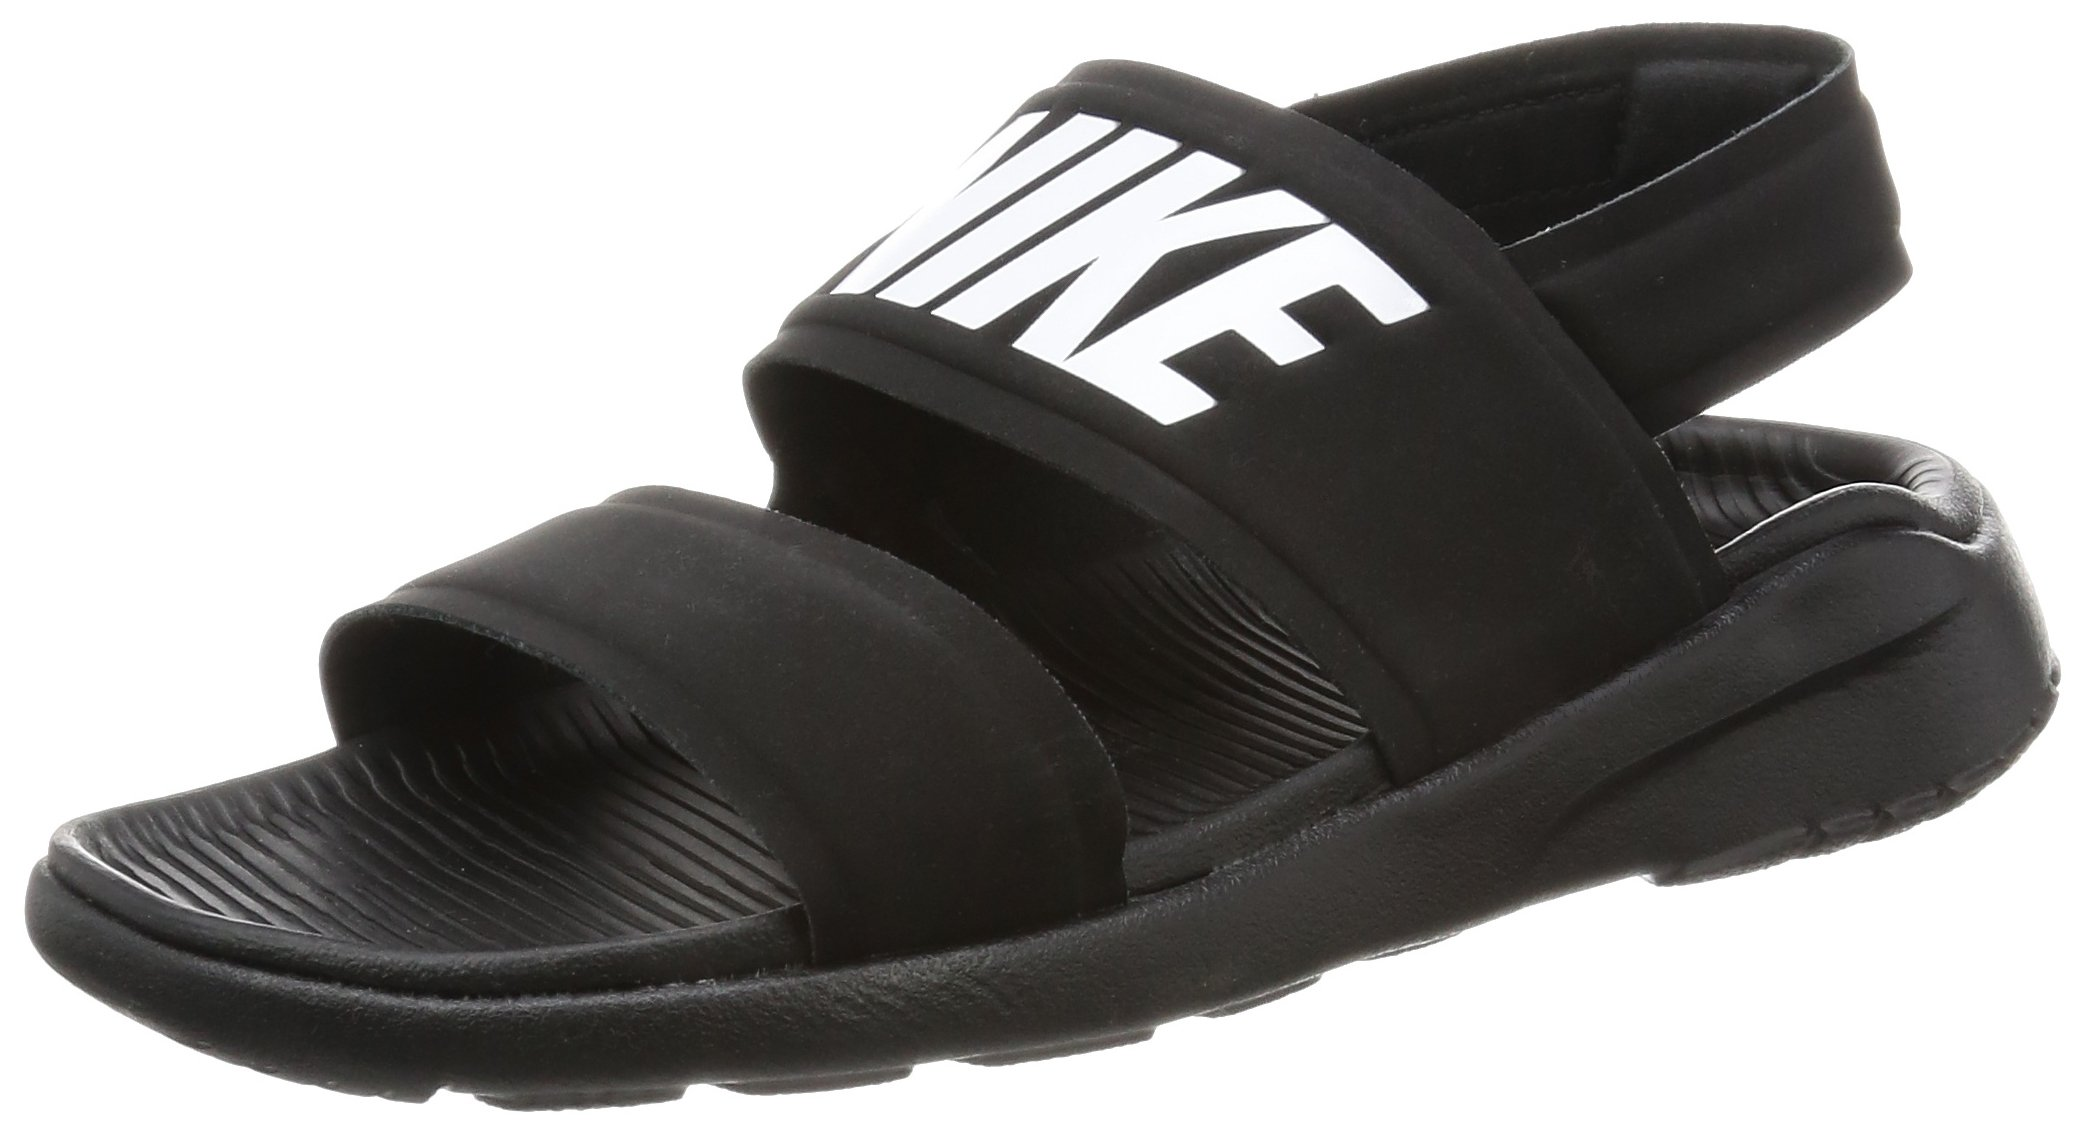 f72d77326 Galleon - Nike Tanjun Womens Sandal Black White Black 882694-001 (6 B(M) US)